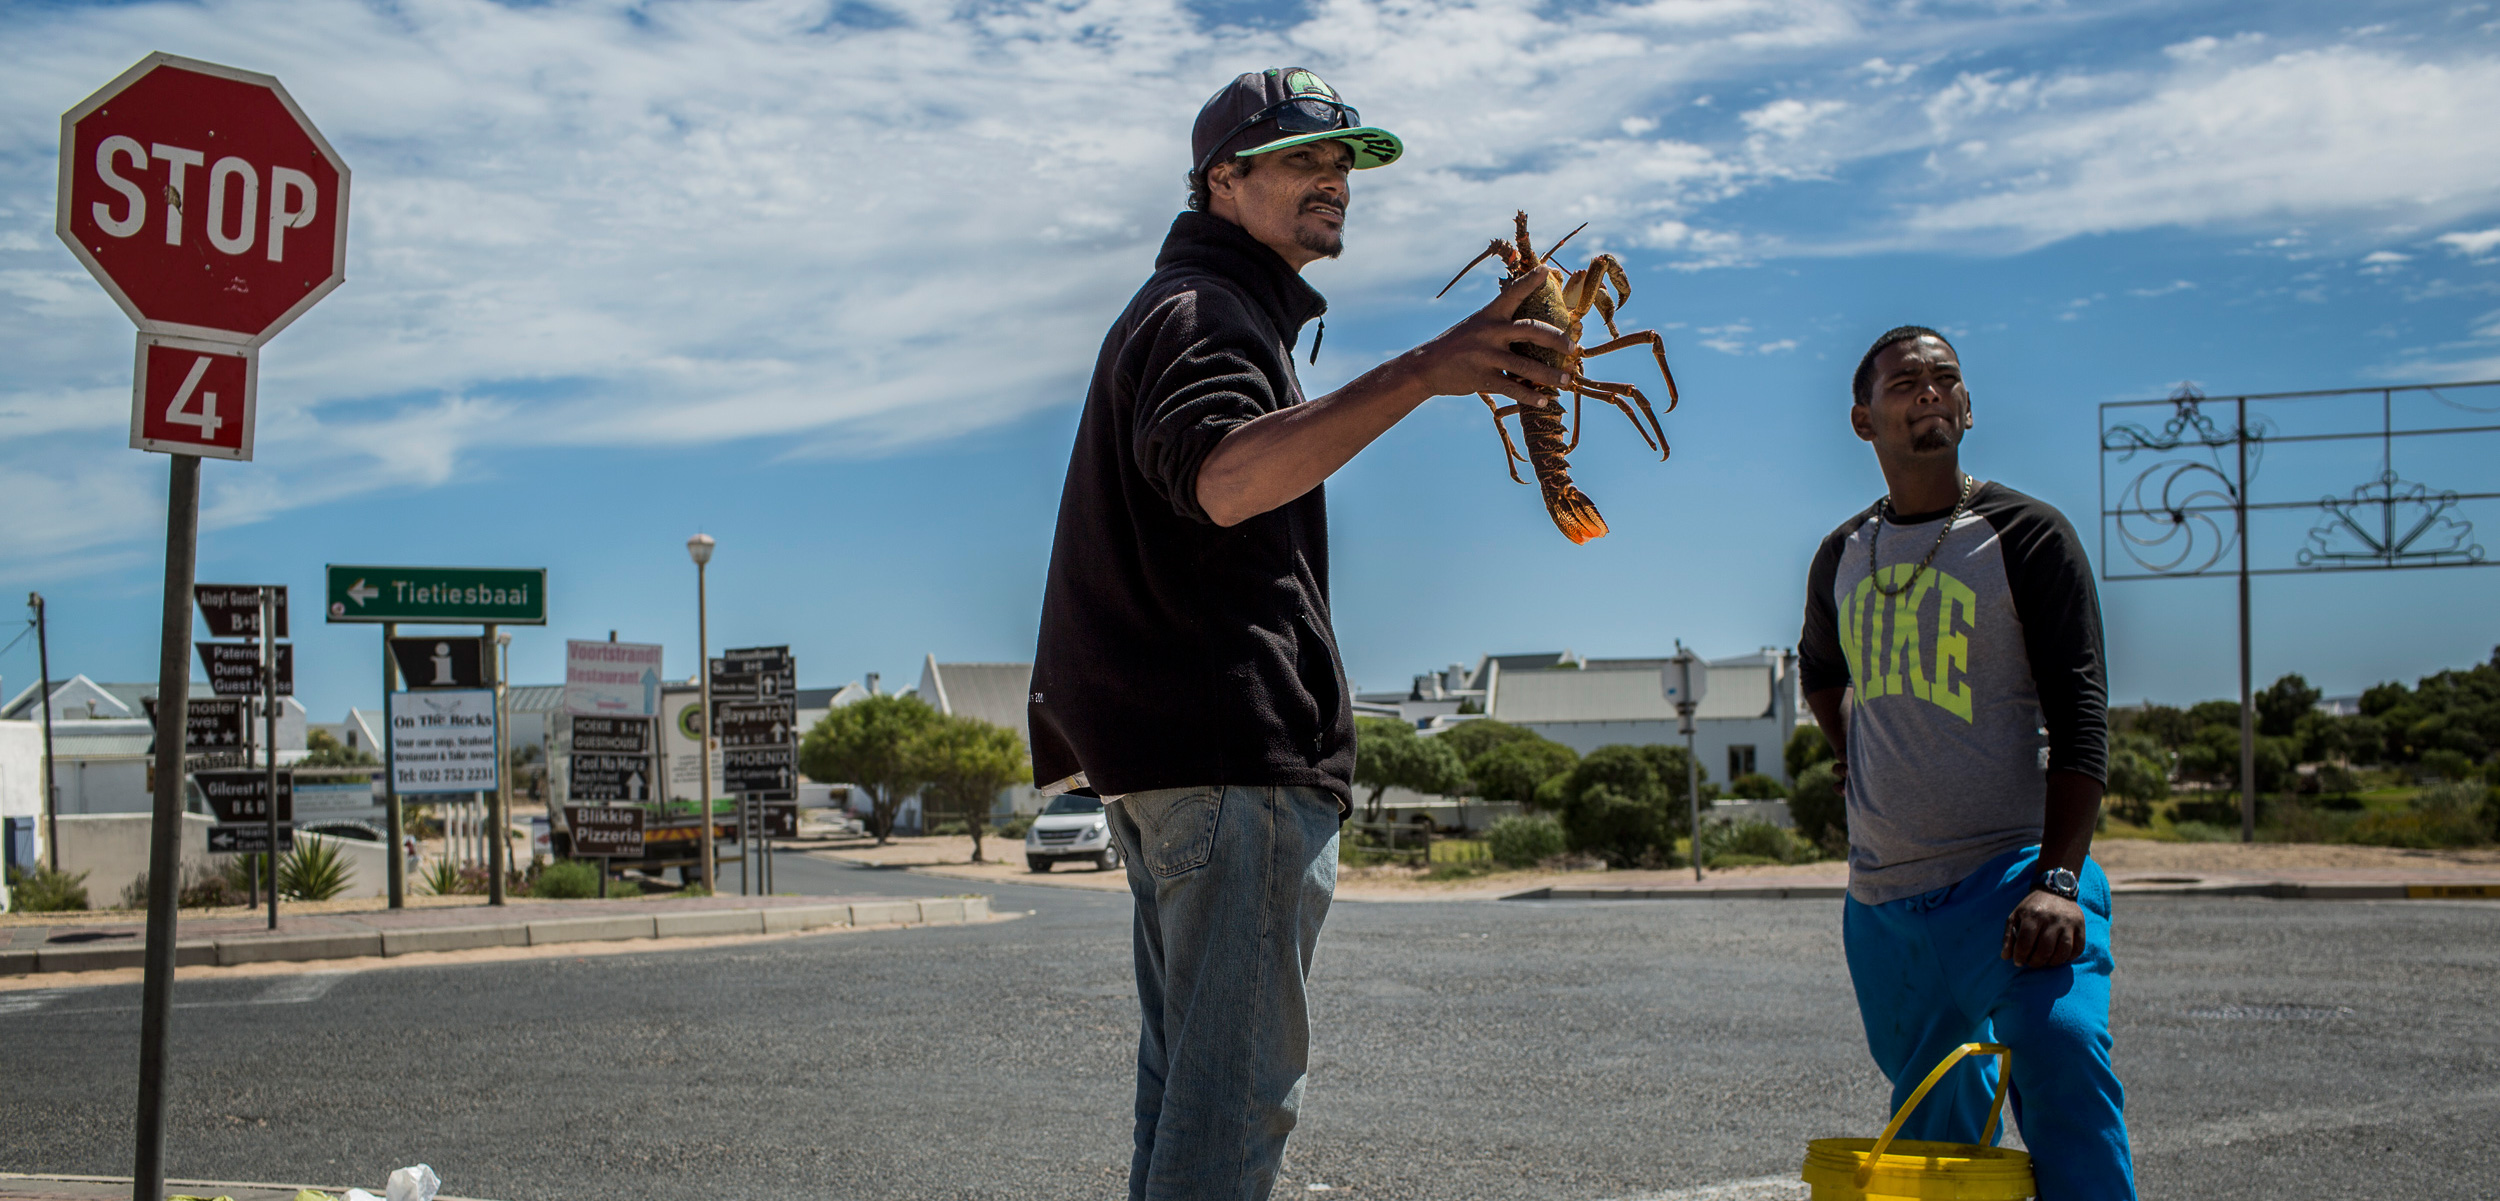 At the entrance to Paternoster, South Africa, men openly sell illegally harvested crayfish. Photo by Charlie Shoemaker